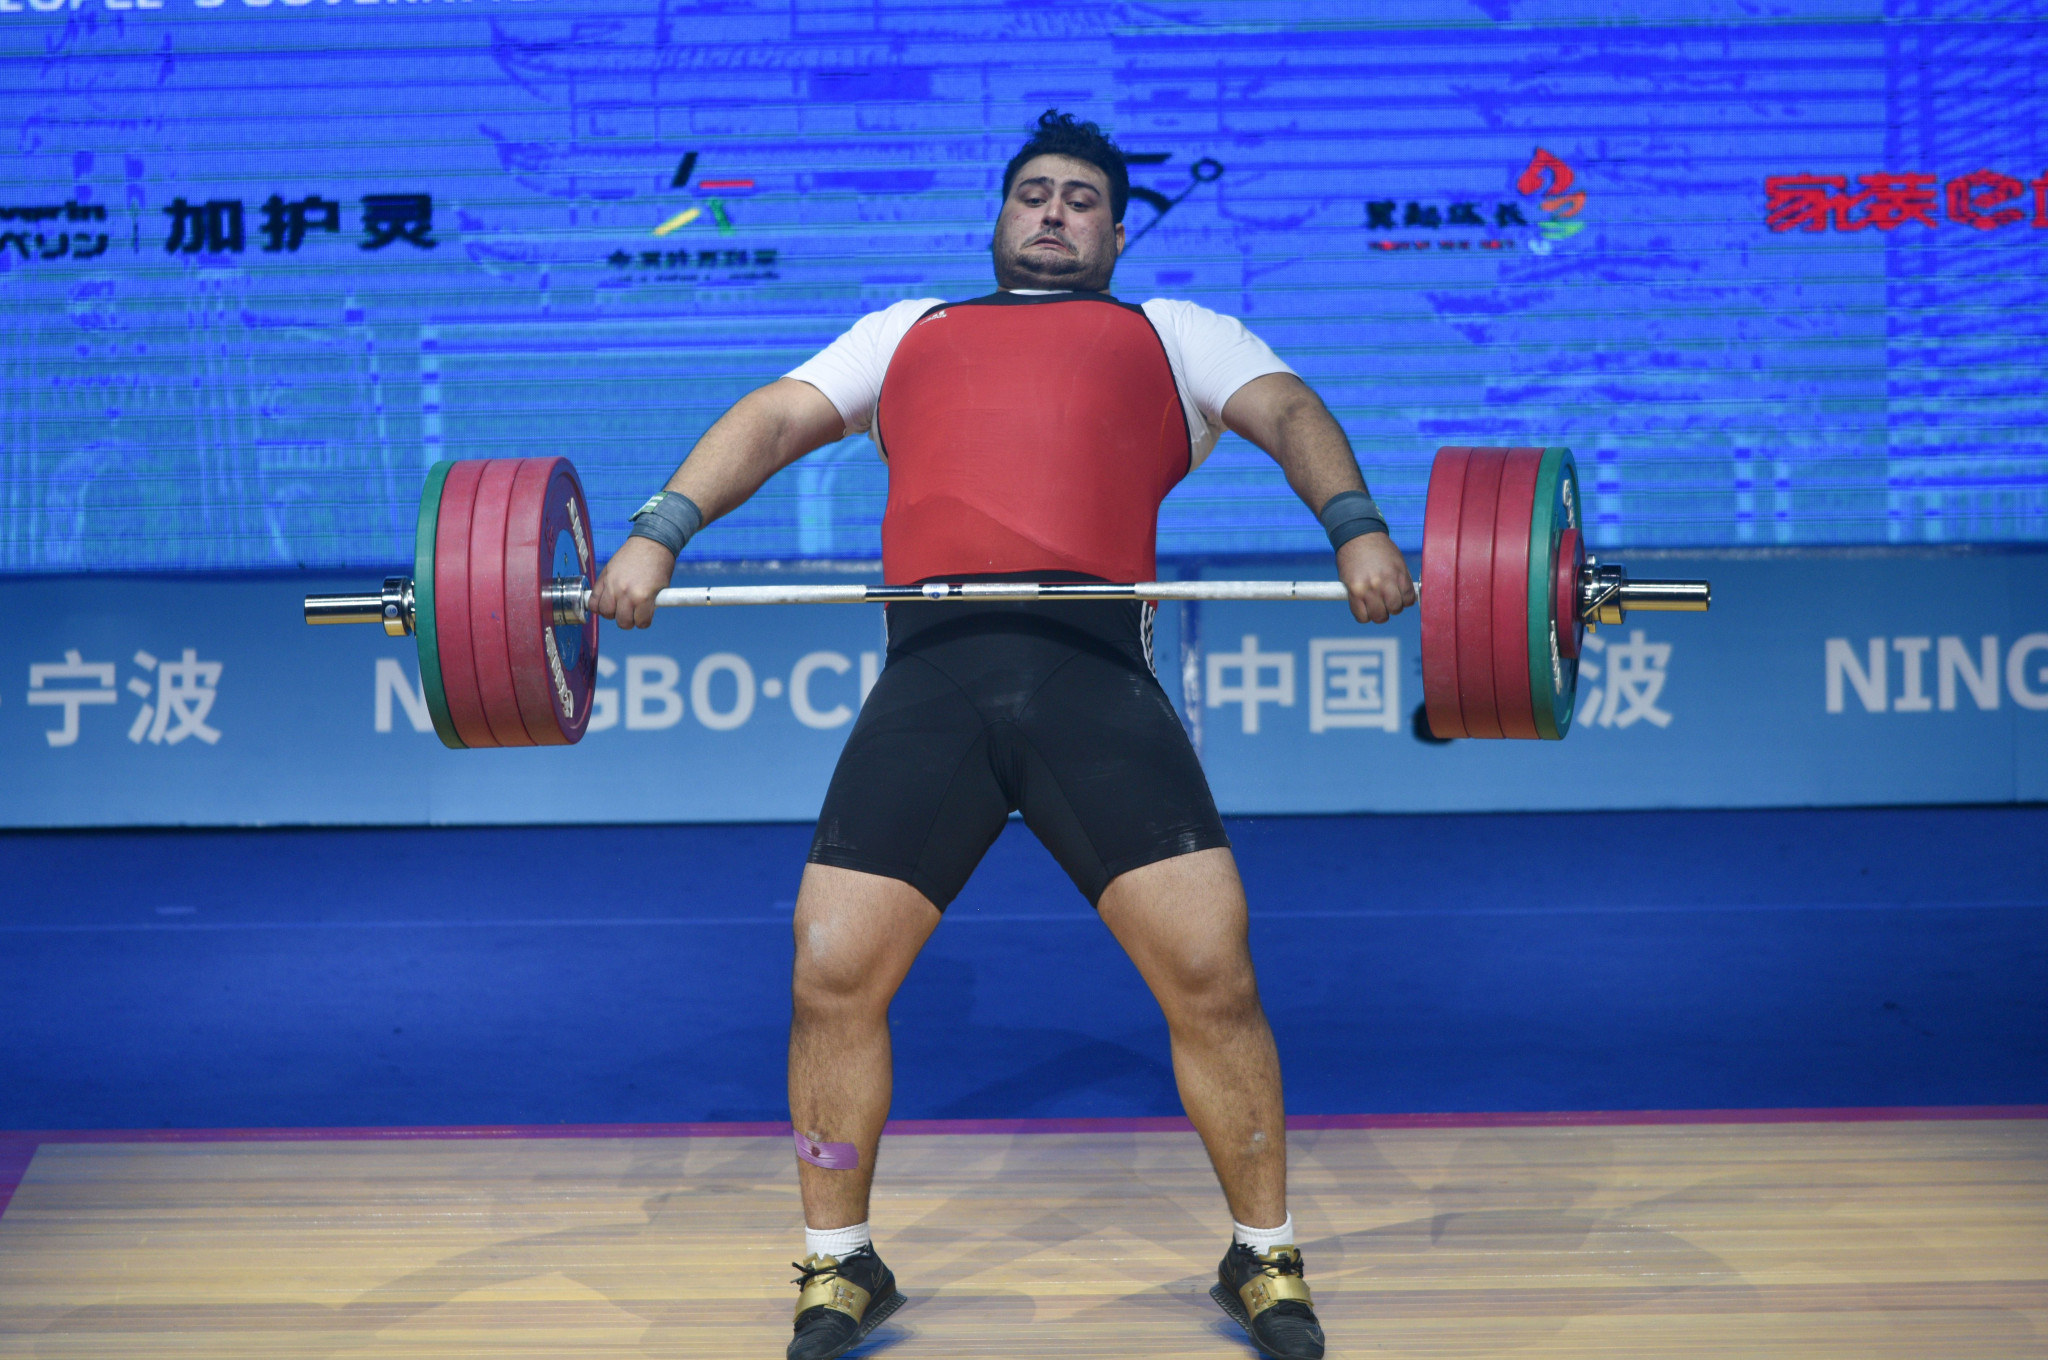 Davoudi edged out by Lalayan at IWF Junior World Championships